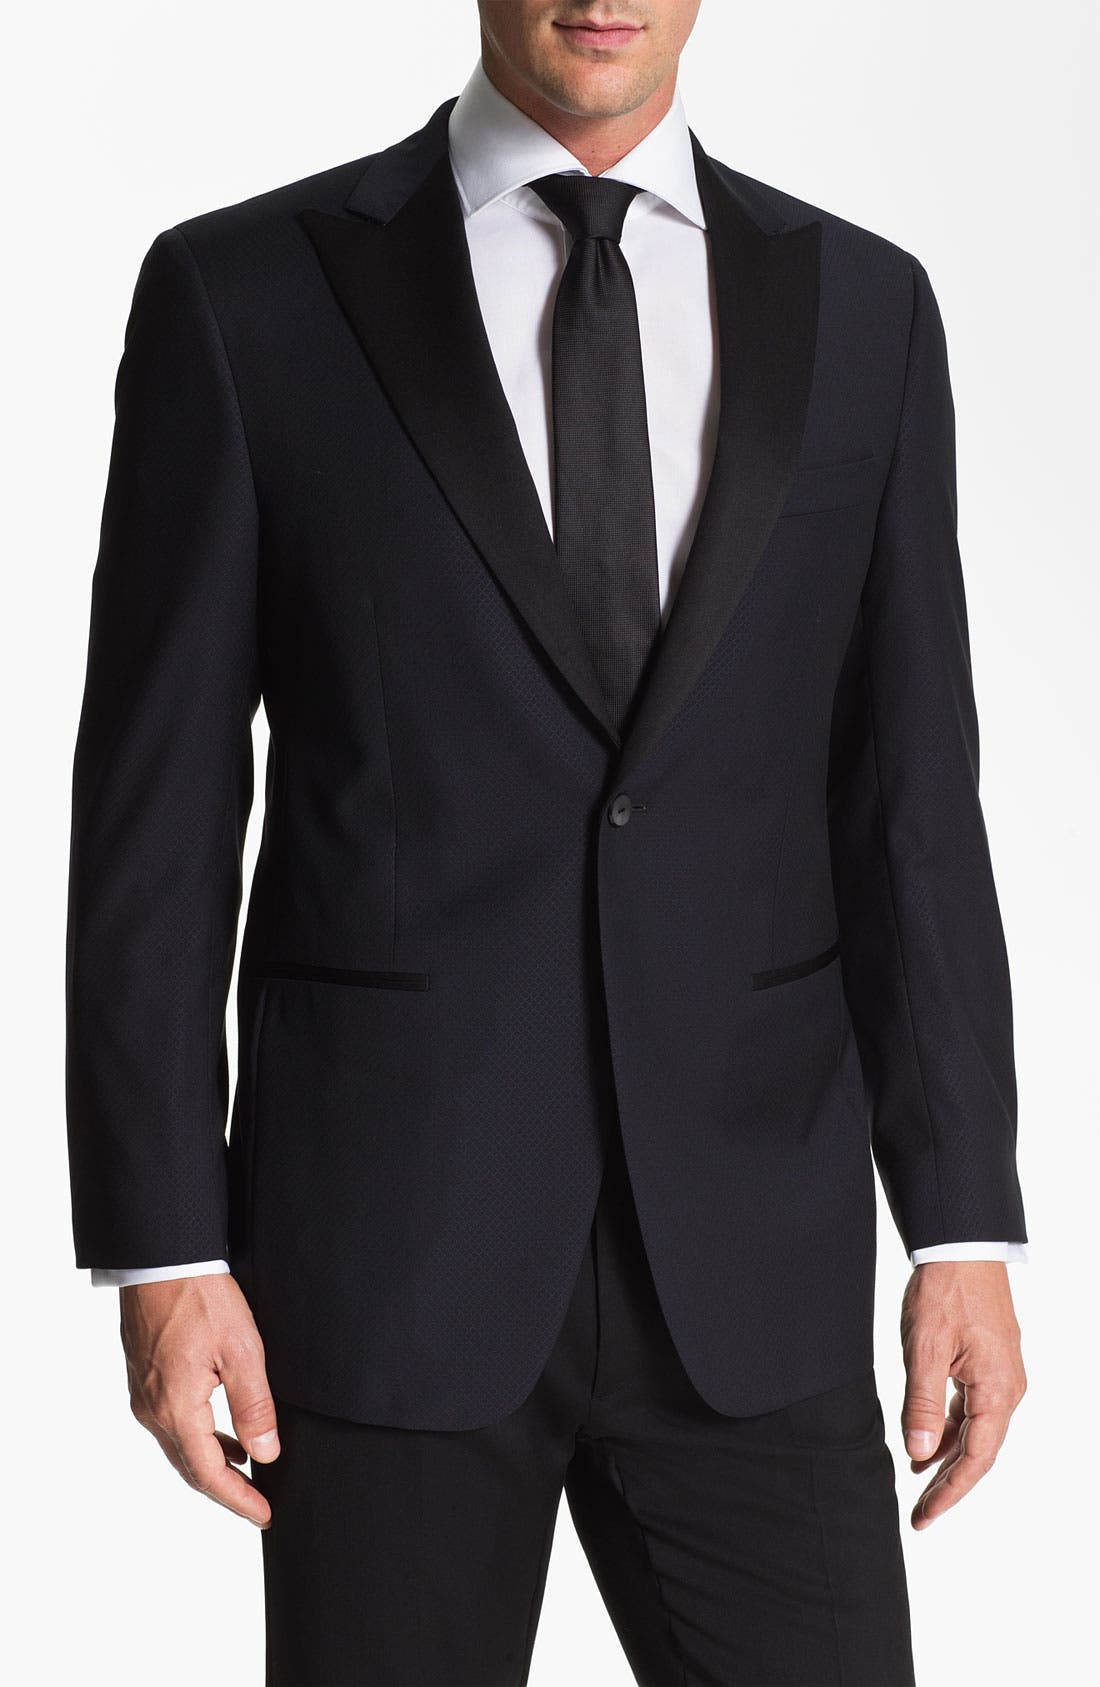 Main Image - Samuelsohn Peak Lapel Dinner Jacket